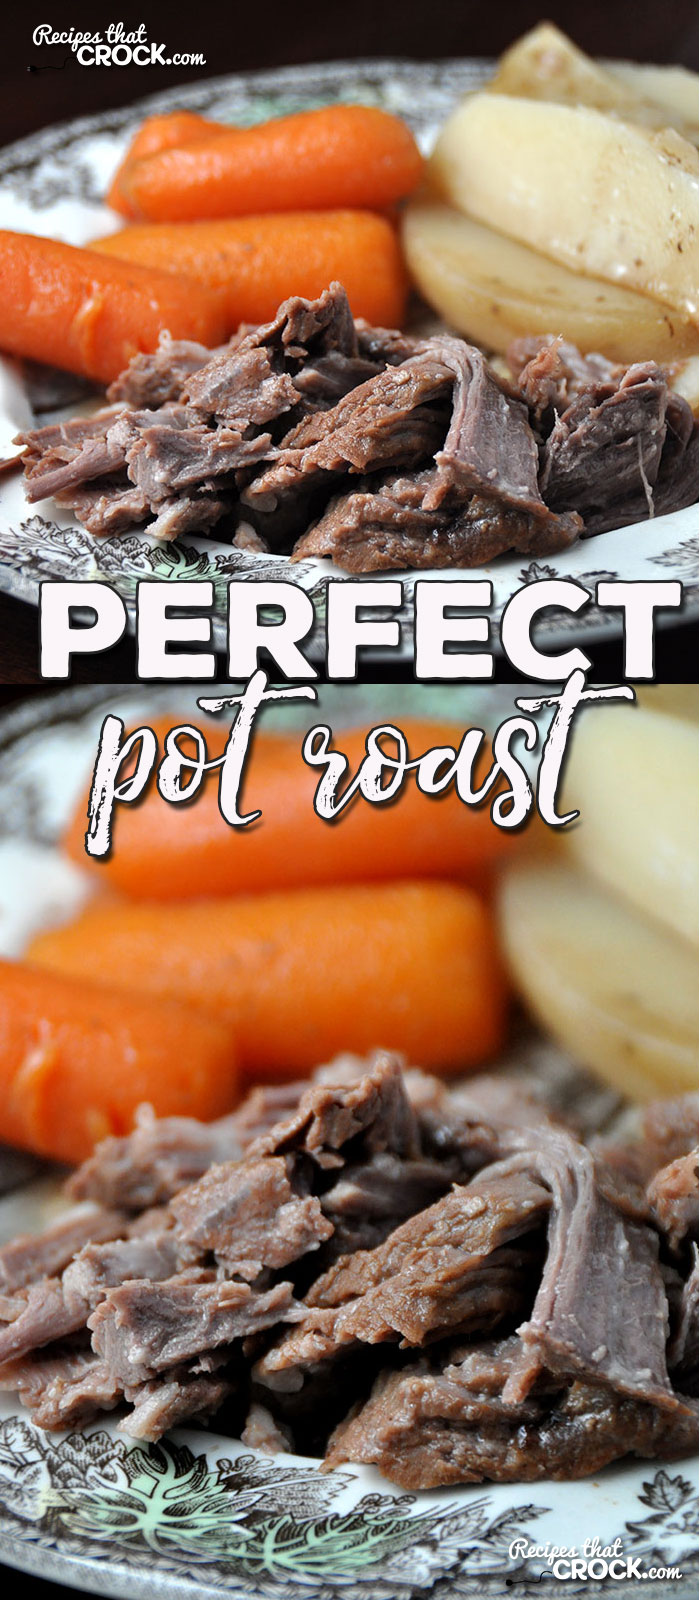 Blend veggies, cut beef heart and liver into small cubes, place in pot and cook just until meat is cooked through. Blend or process as desired. Add fish, processed chicken and cooked grain, mix together.